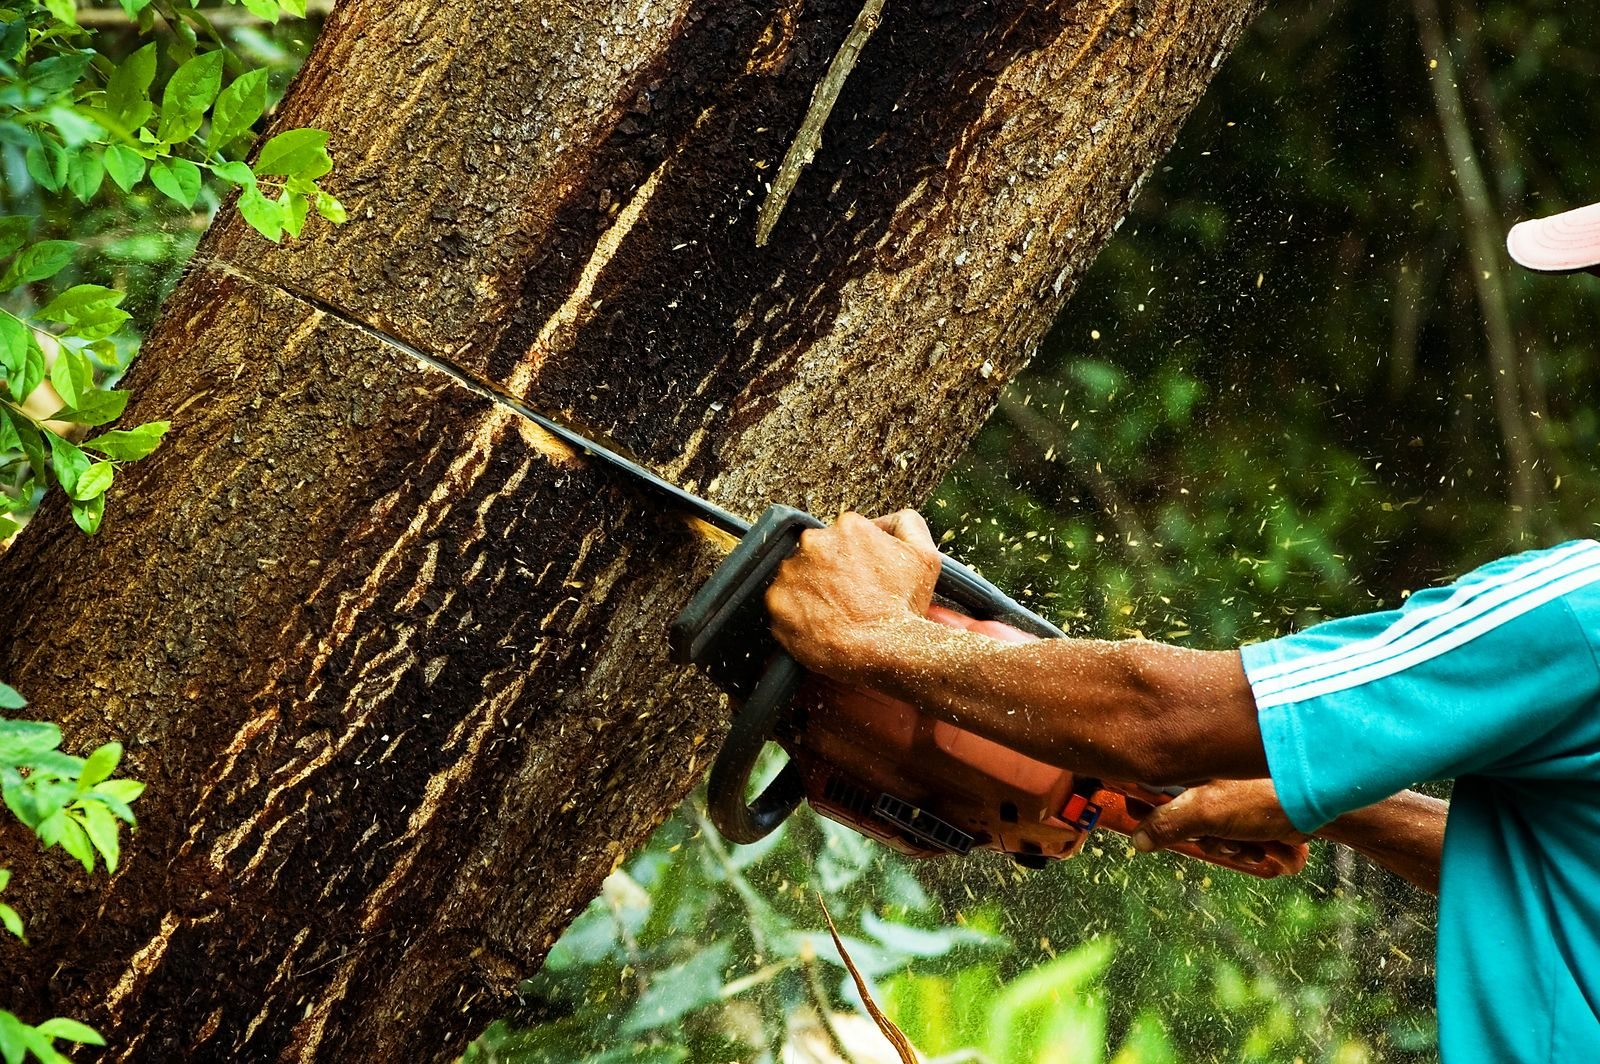 Chainsaw in the rain forest.